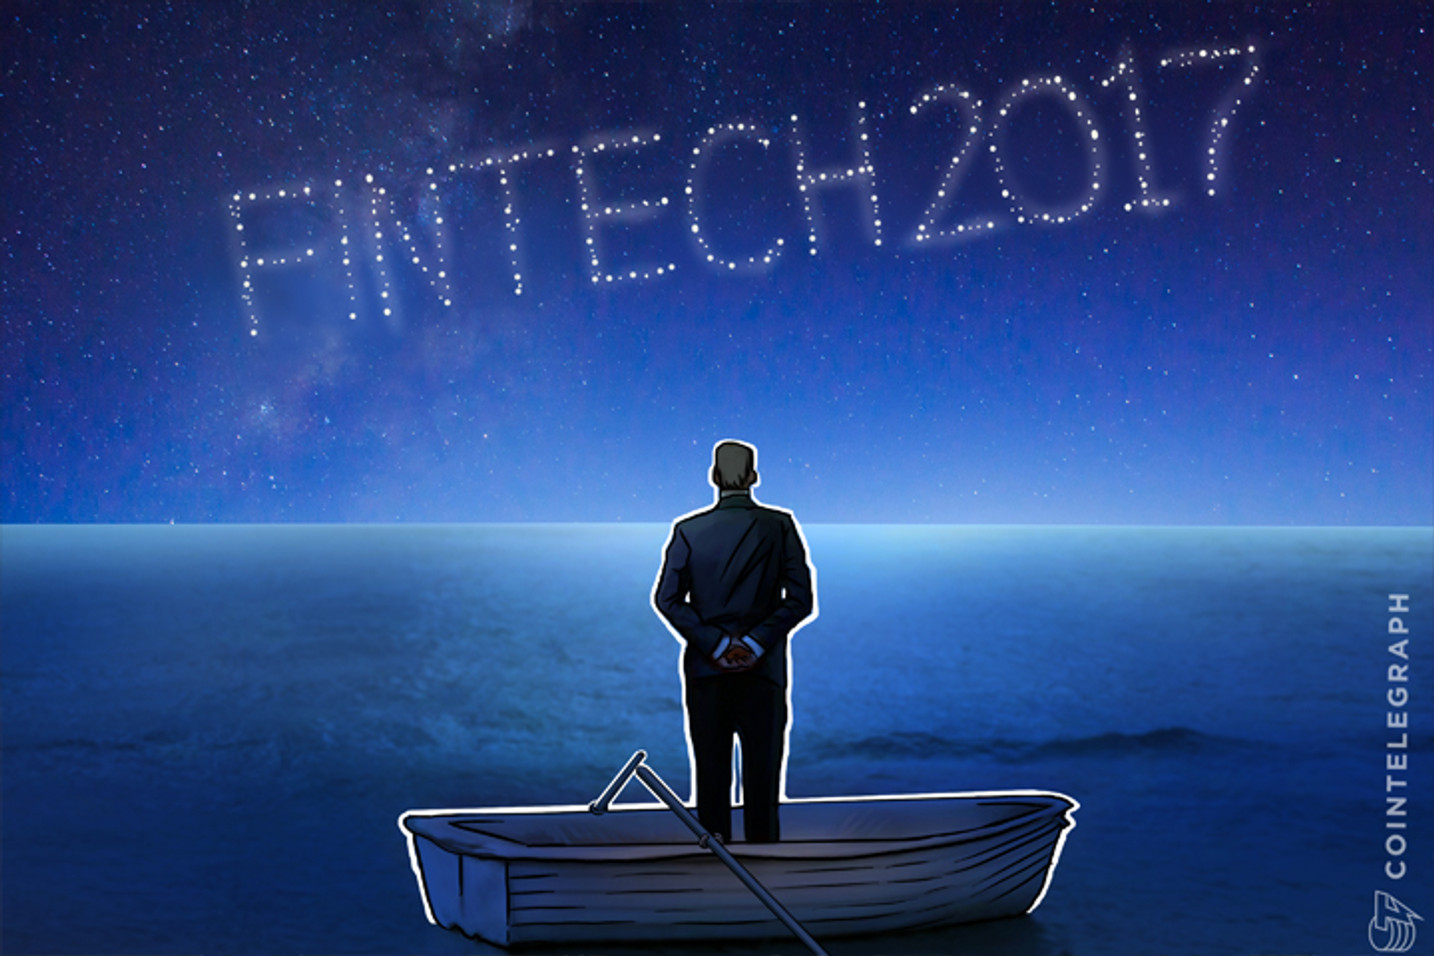 Blockchain Mini-Consortiums, New DApps: What's Next for Financial Services in 2017